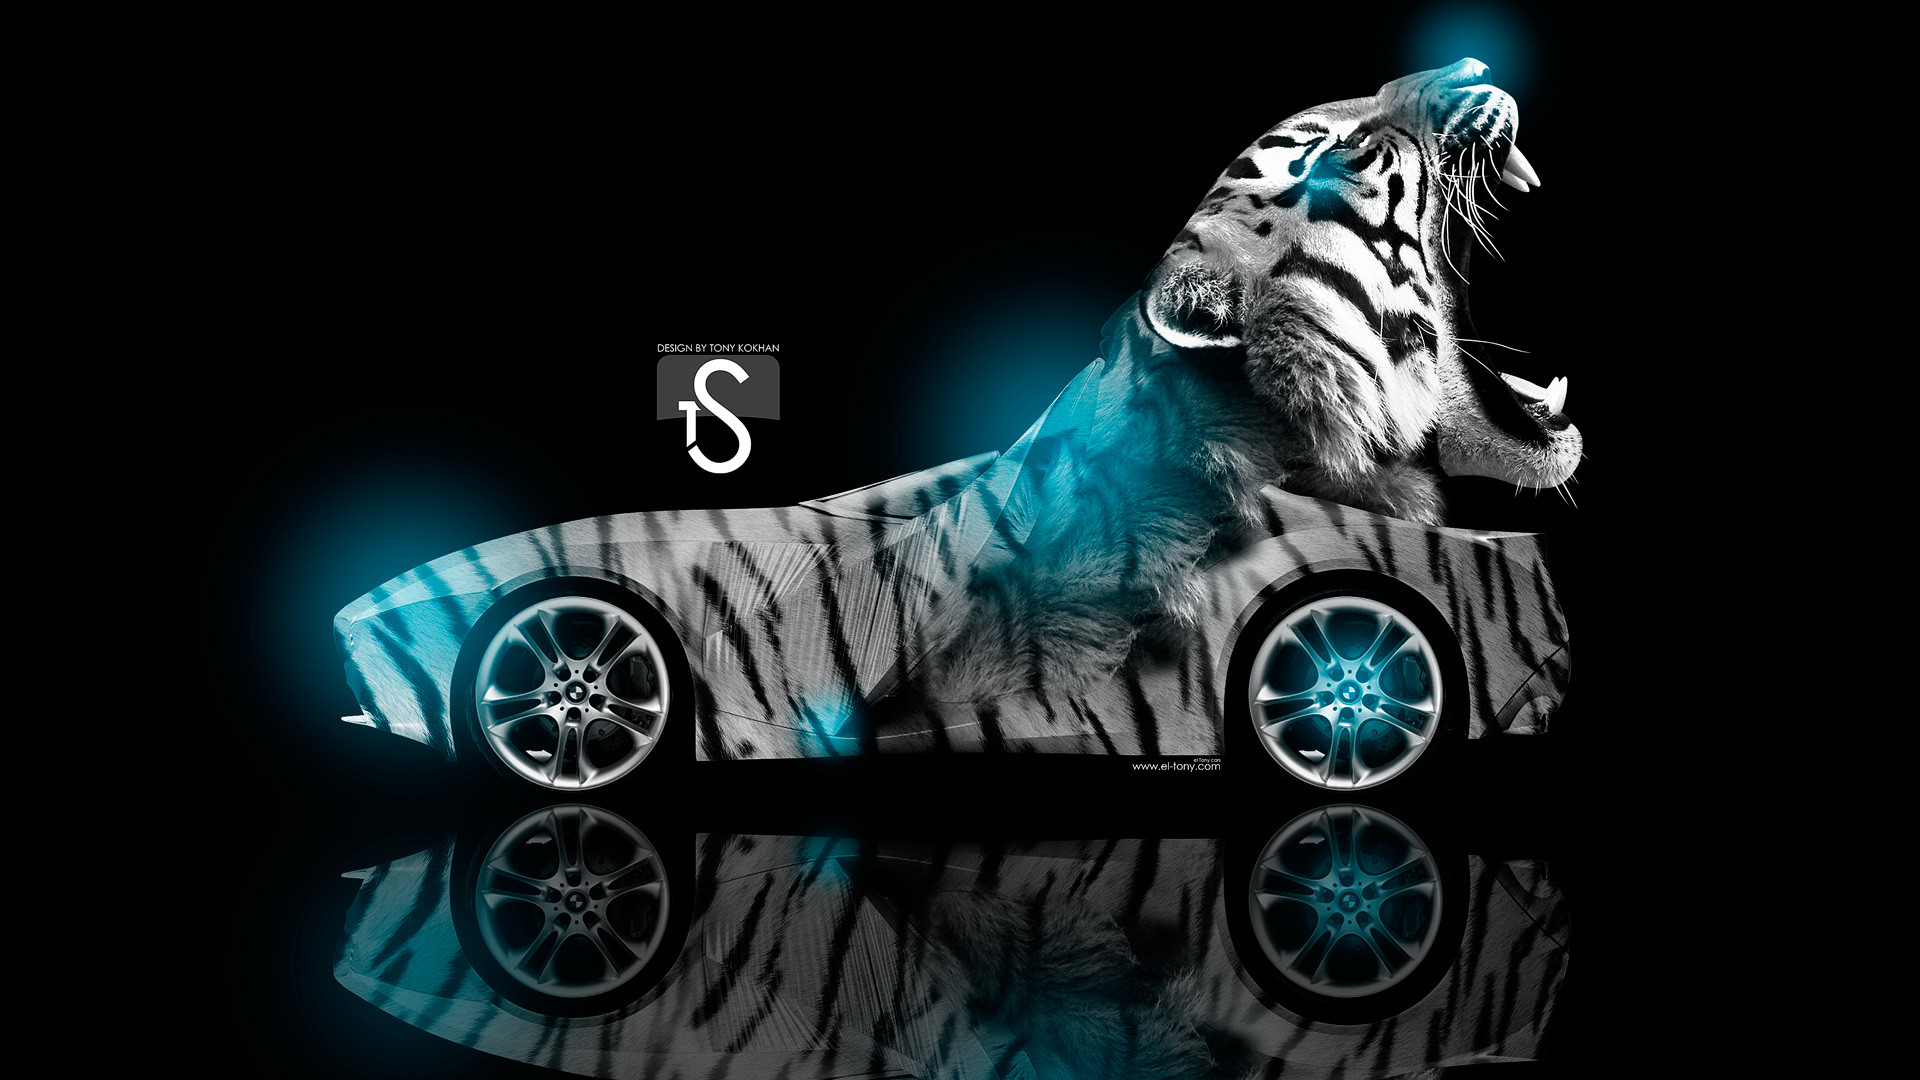 cool wallpapers of tigers (54+ images)